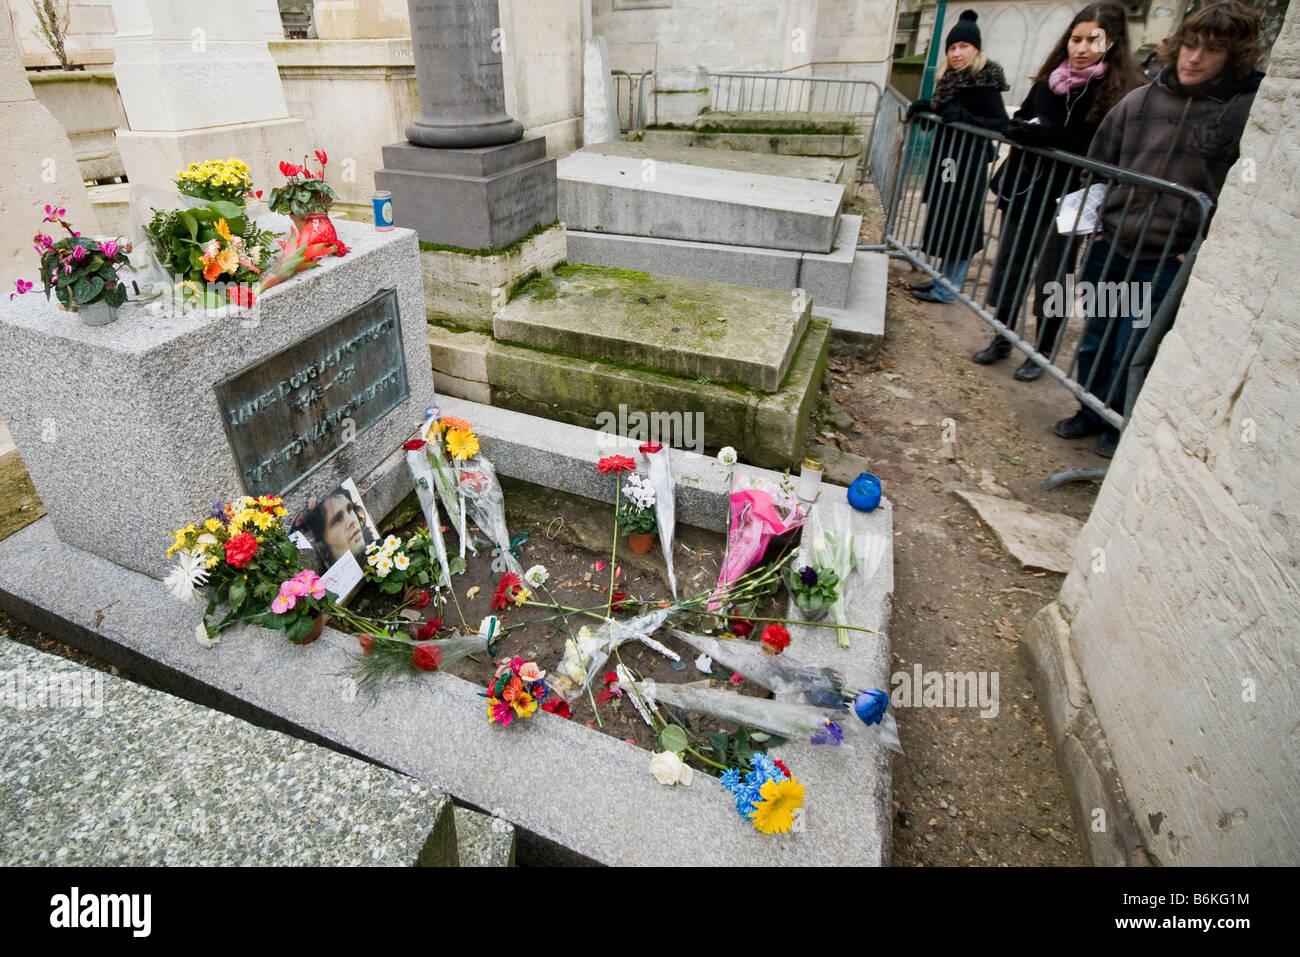 The grave of Jim Morrison in Pere Lachaise cemetery in Paris France - Stock Image